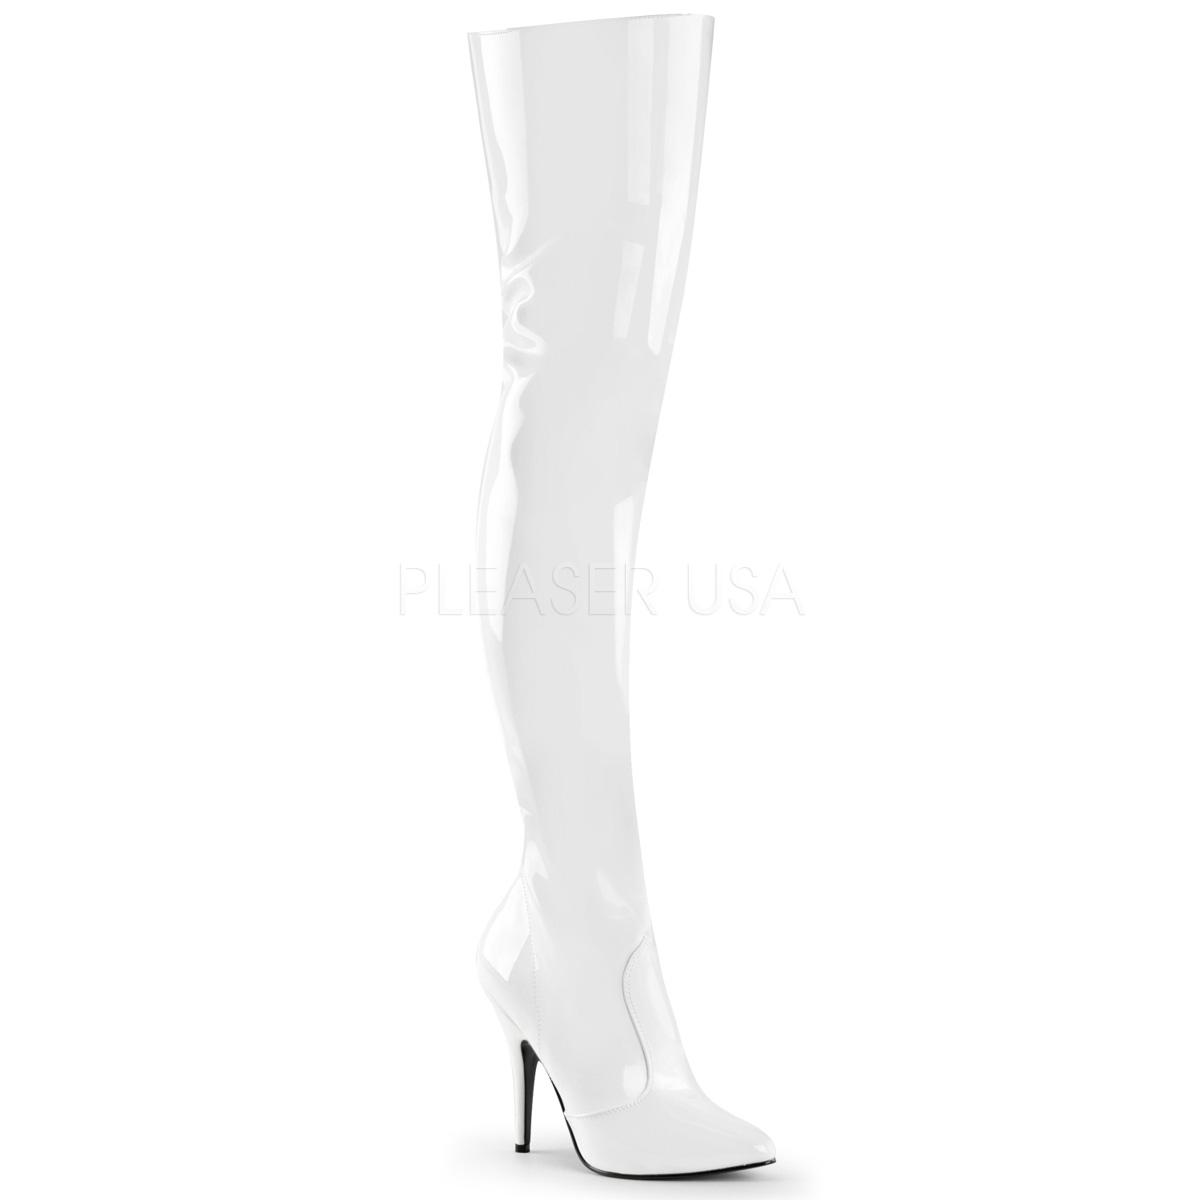 White Elasticated Thigh Boot